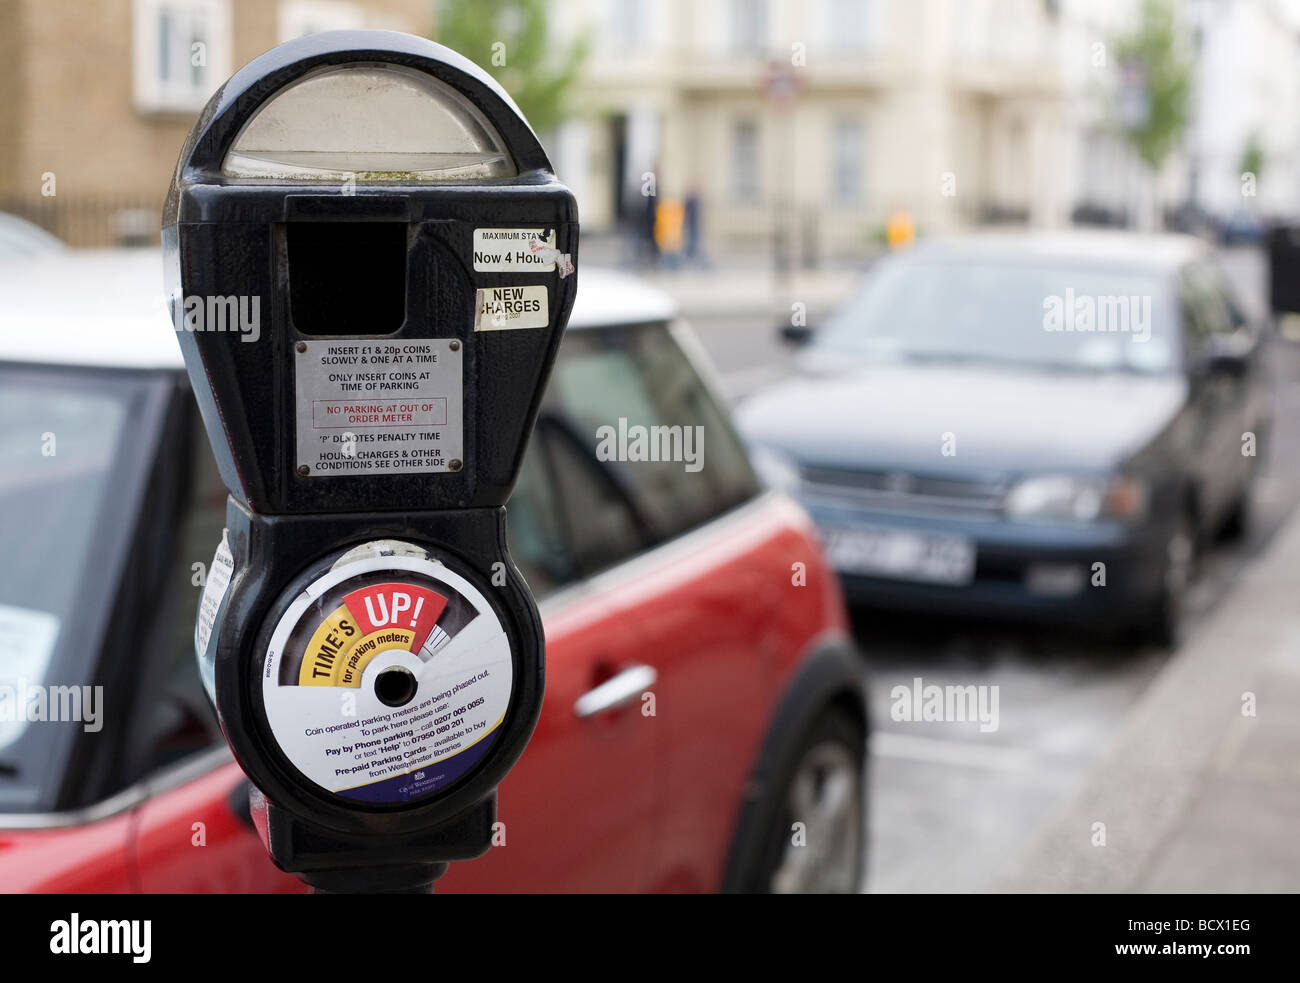 London parking meter - Stock Image